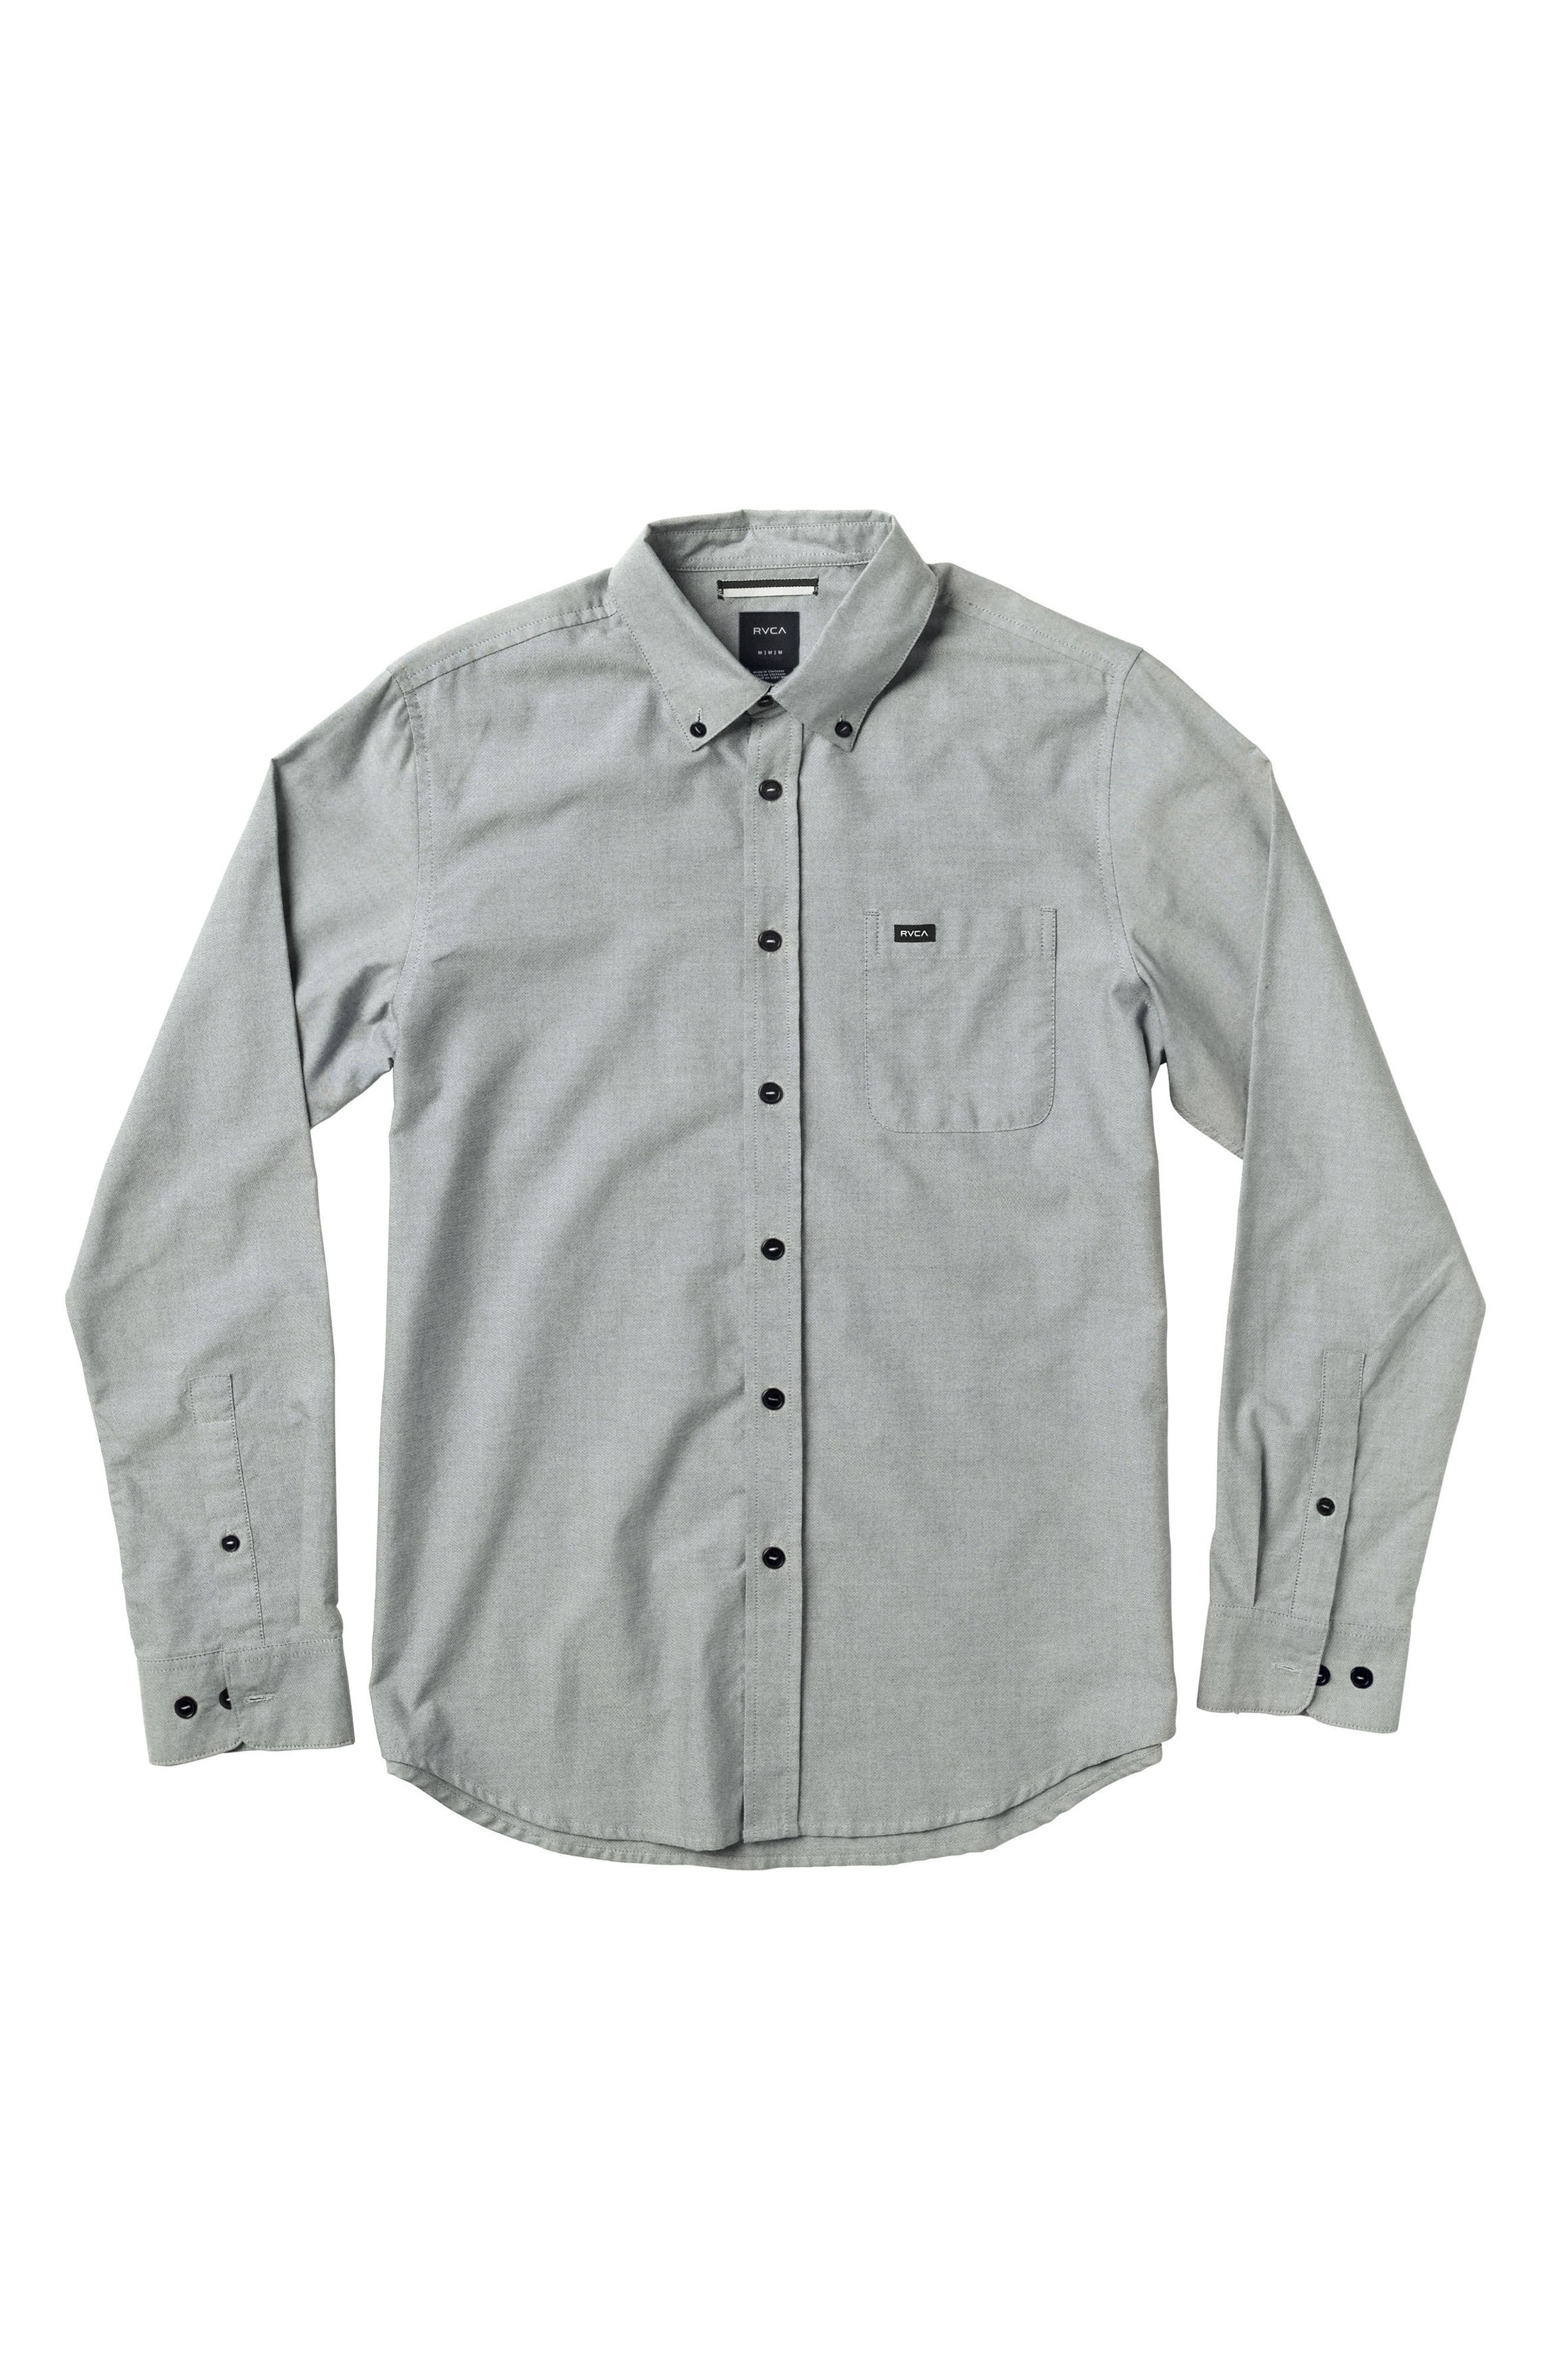 'That'll Do' Long Sleeve Oxford Woven Shirt,                             Main thumbnail 1, color,                             PAVEMENT